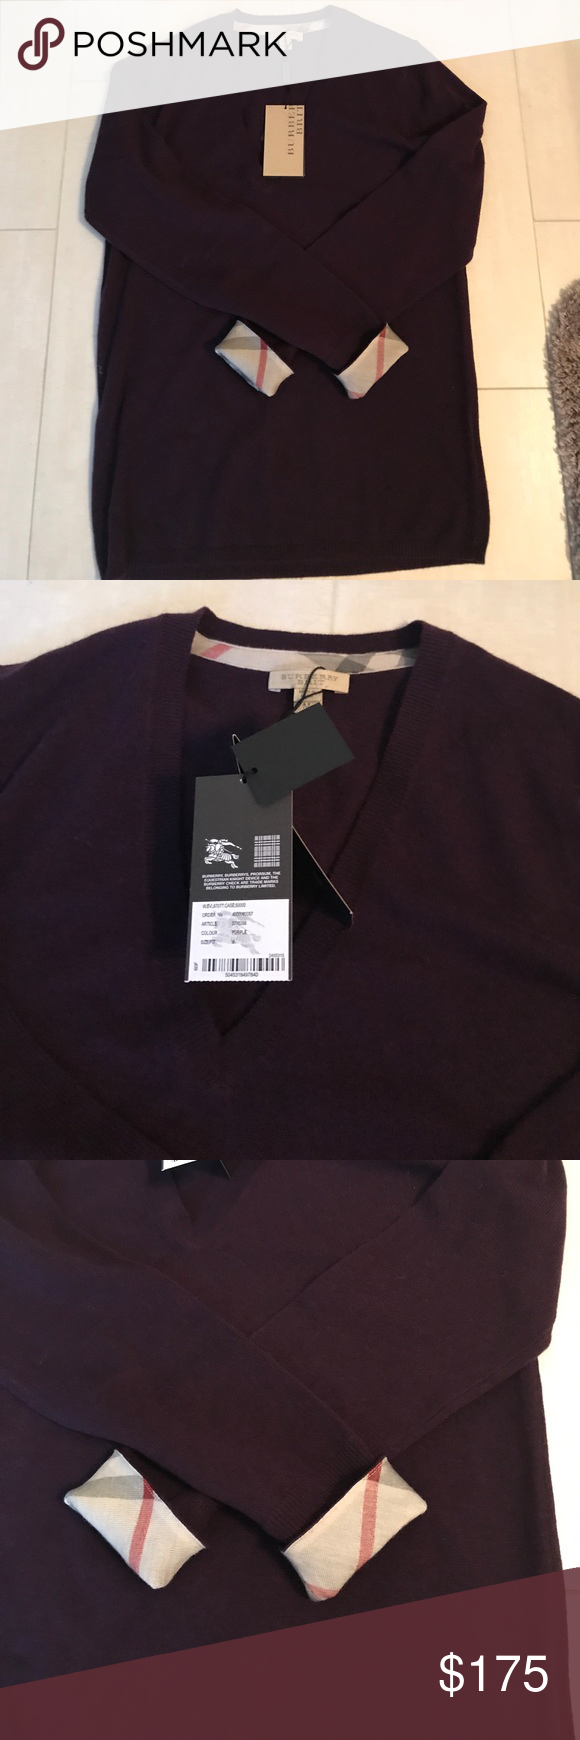 Brand new Burberry Brit v-neck cashmere sweater NWT | Burberry ...